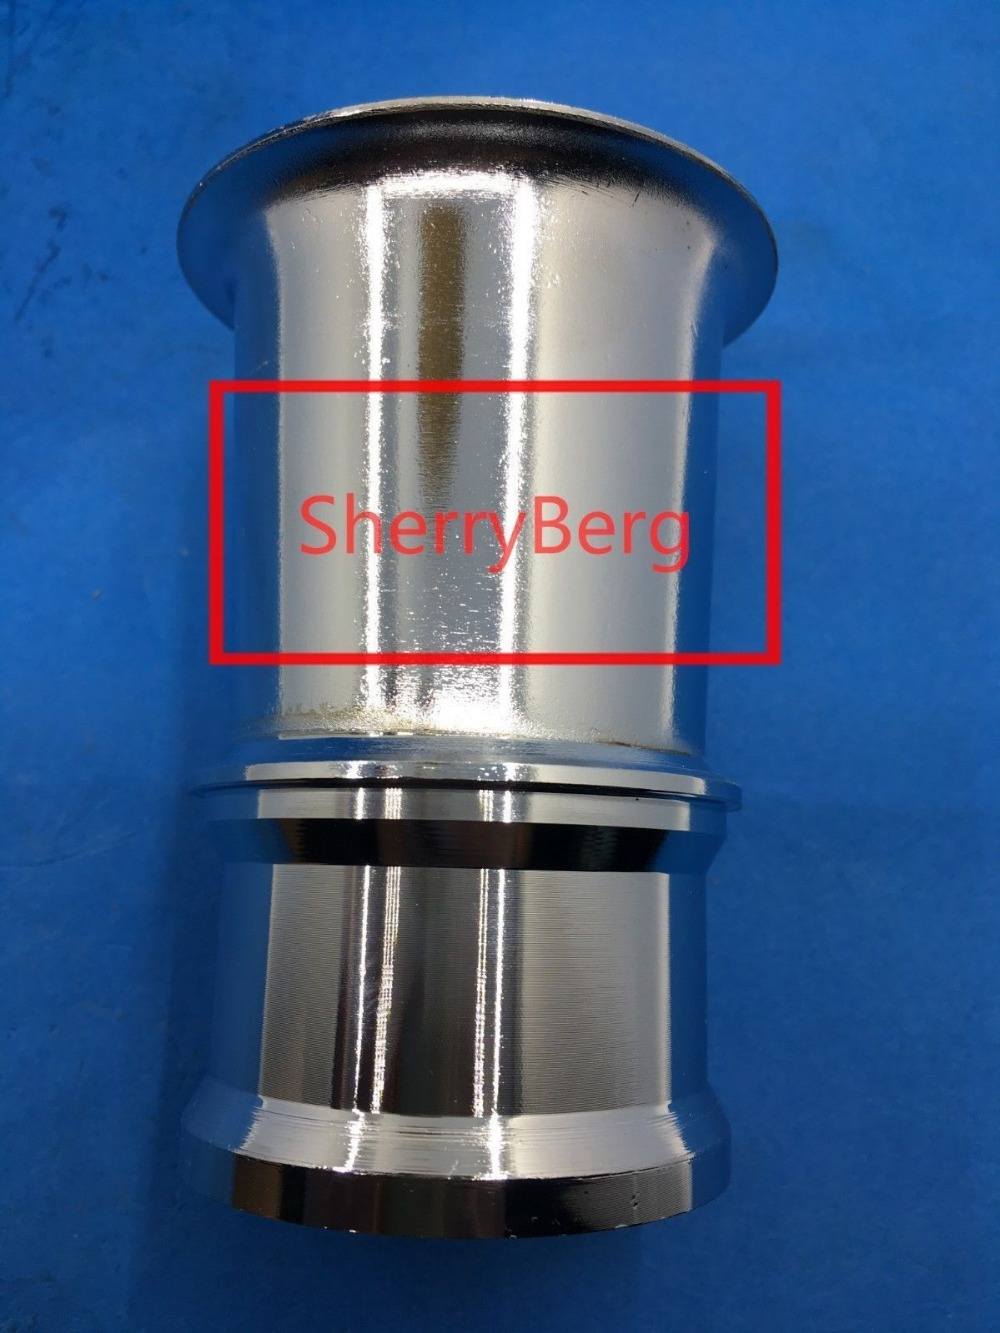 купить SherryBerg air horn fit for WEBER 48 DCO carburettor Carb carburetor Velocity Stacks Trumpets Ram Tubes Dellorto Solex sold pair по цене 2719.22 рублей